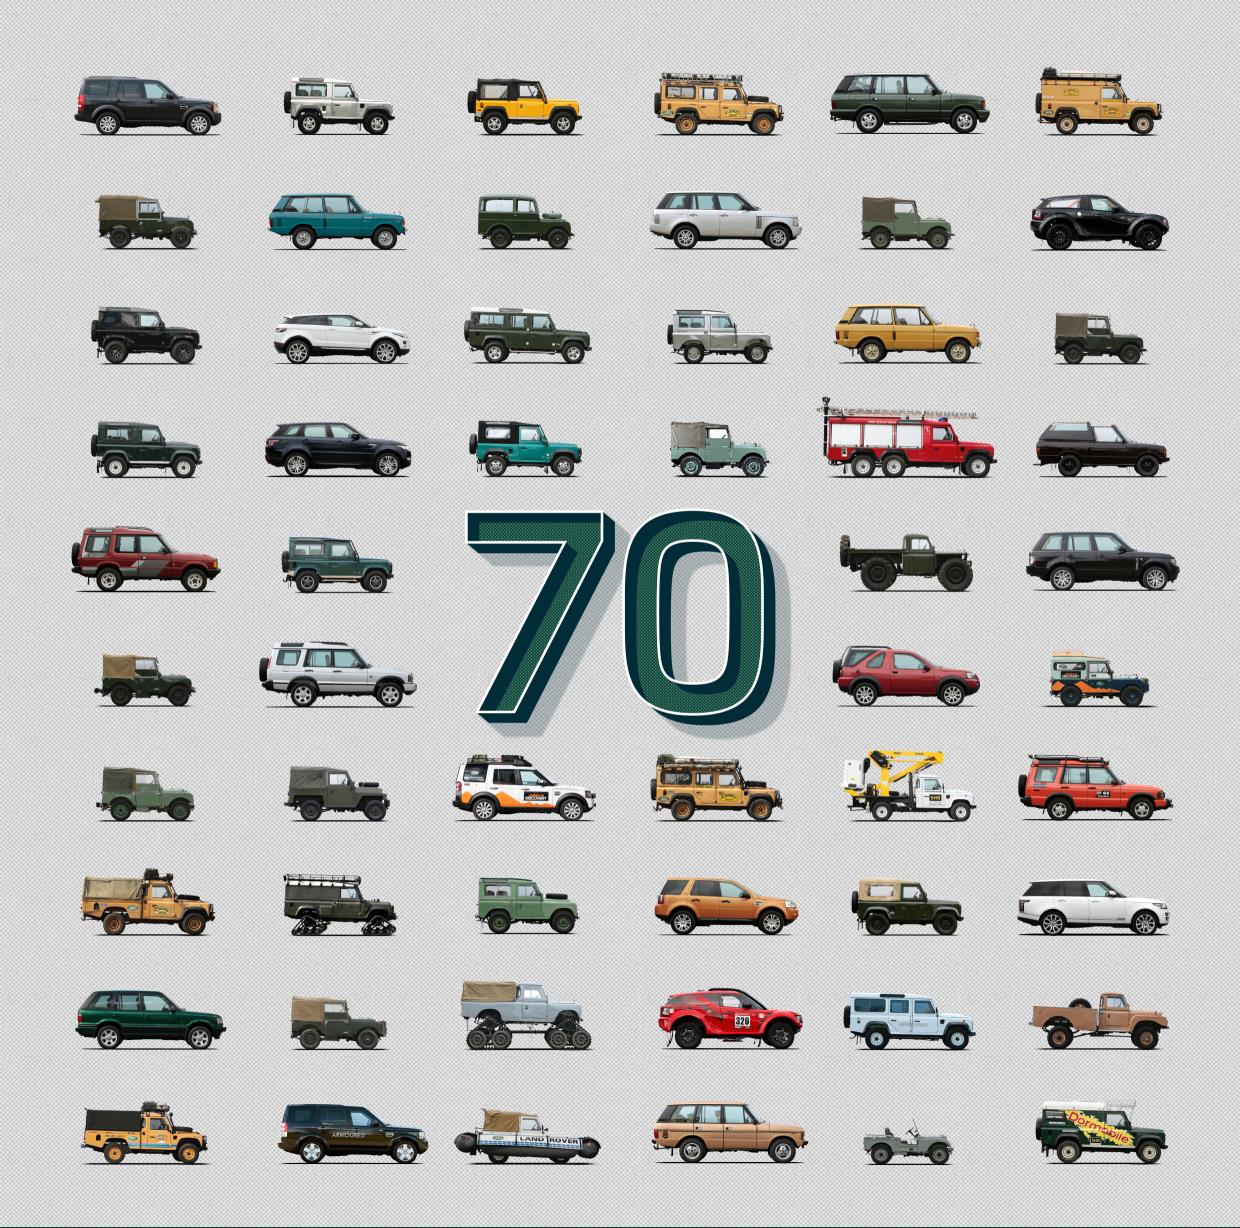 Land Rover Marks its 70th Birthday with Web Broadcast